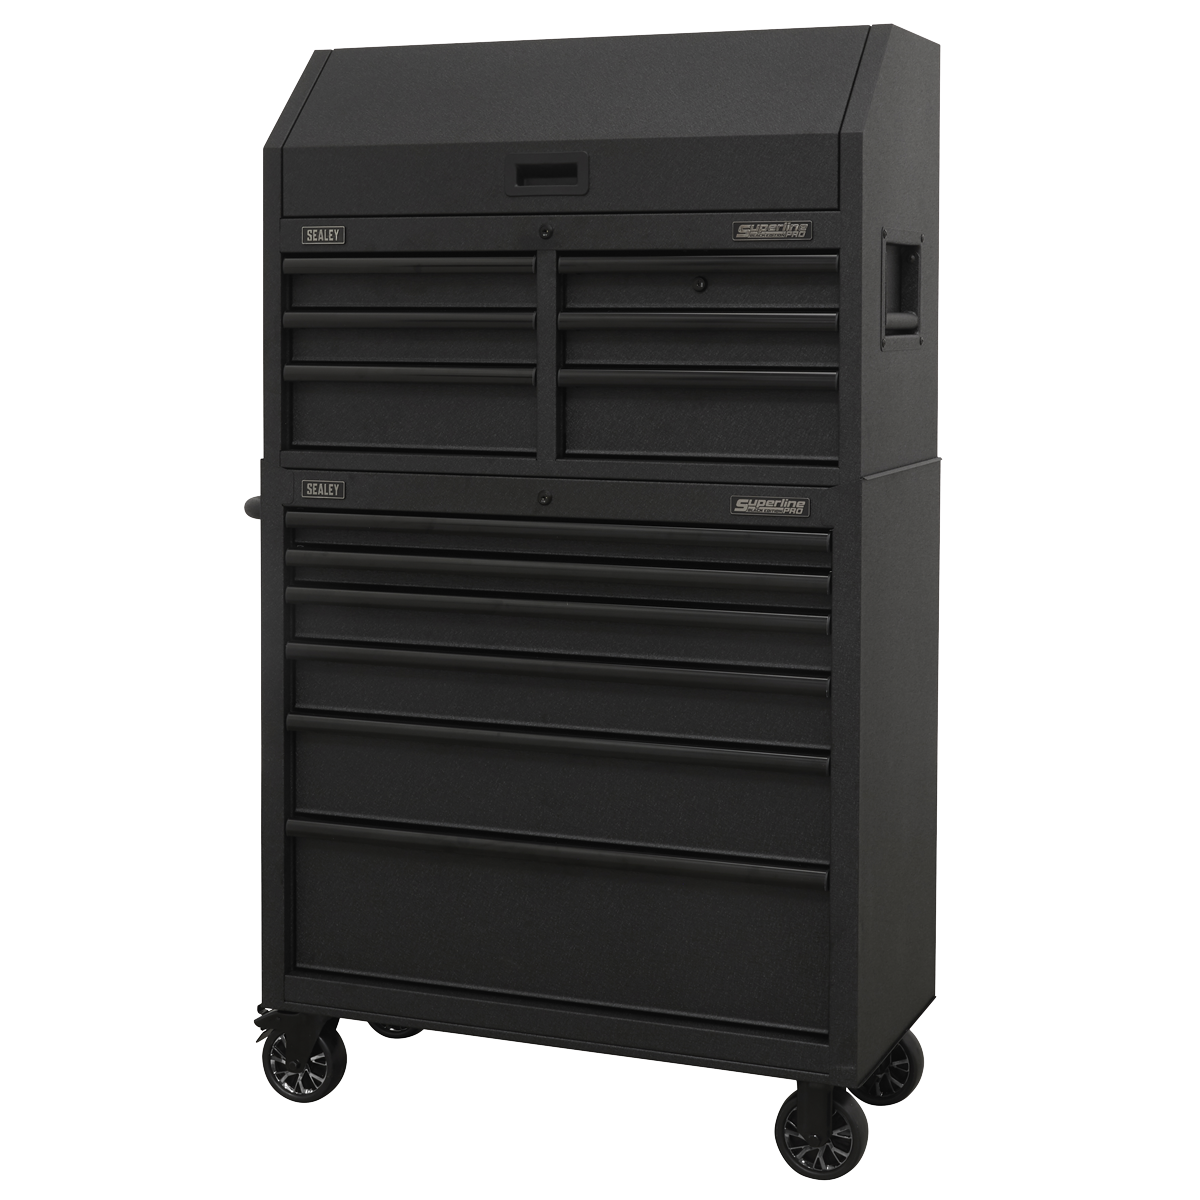 12 Drawer Tool Chest Combination with Power Bar